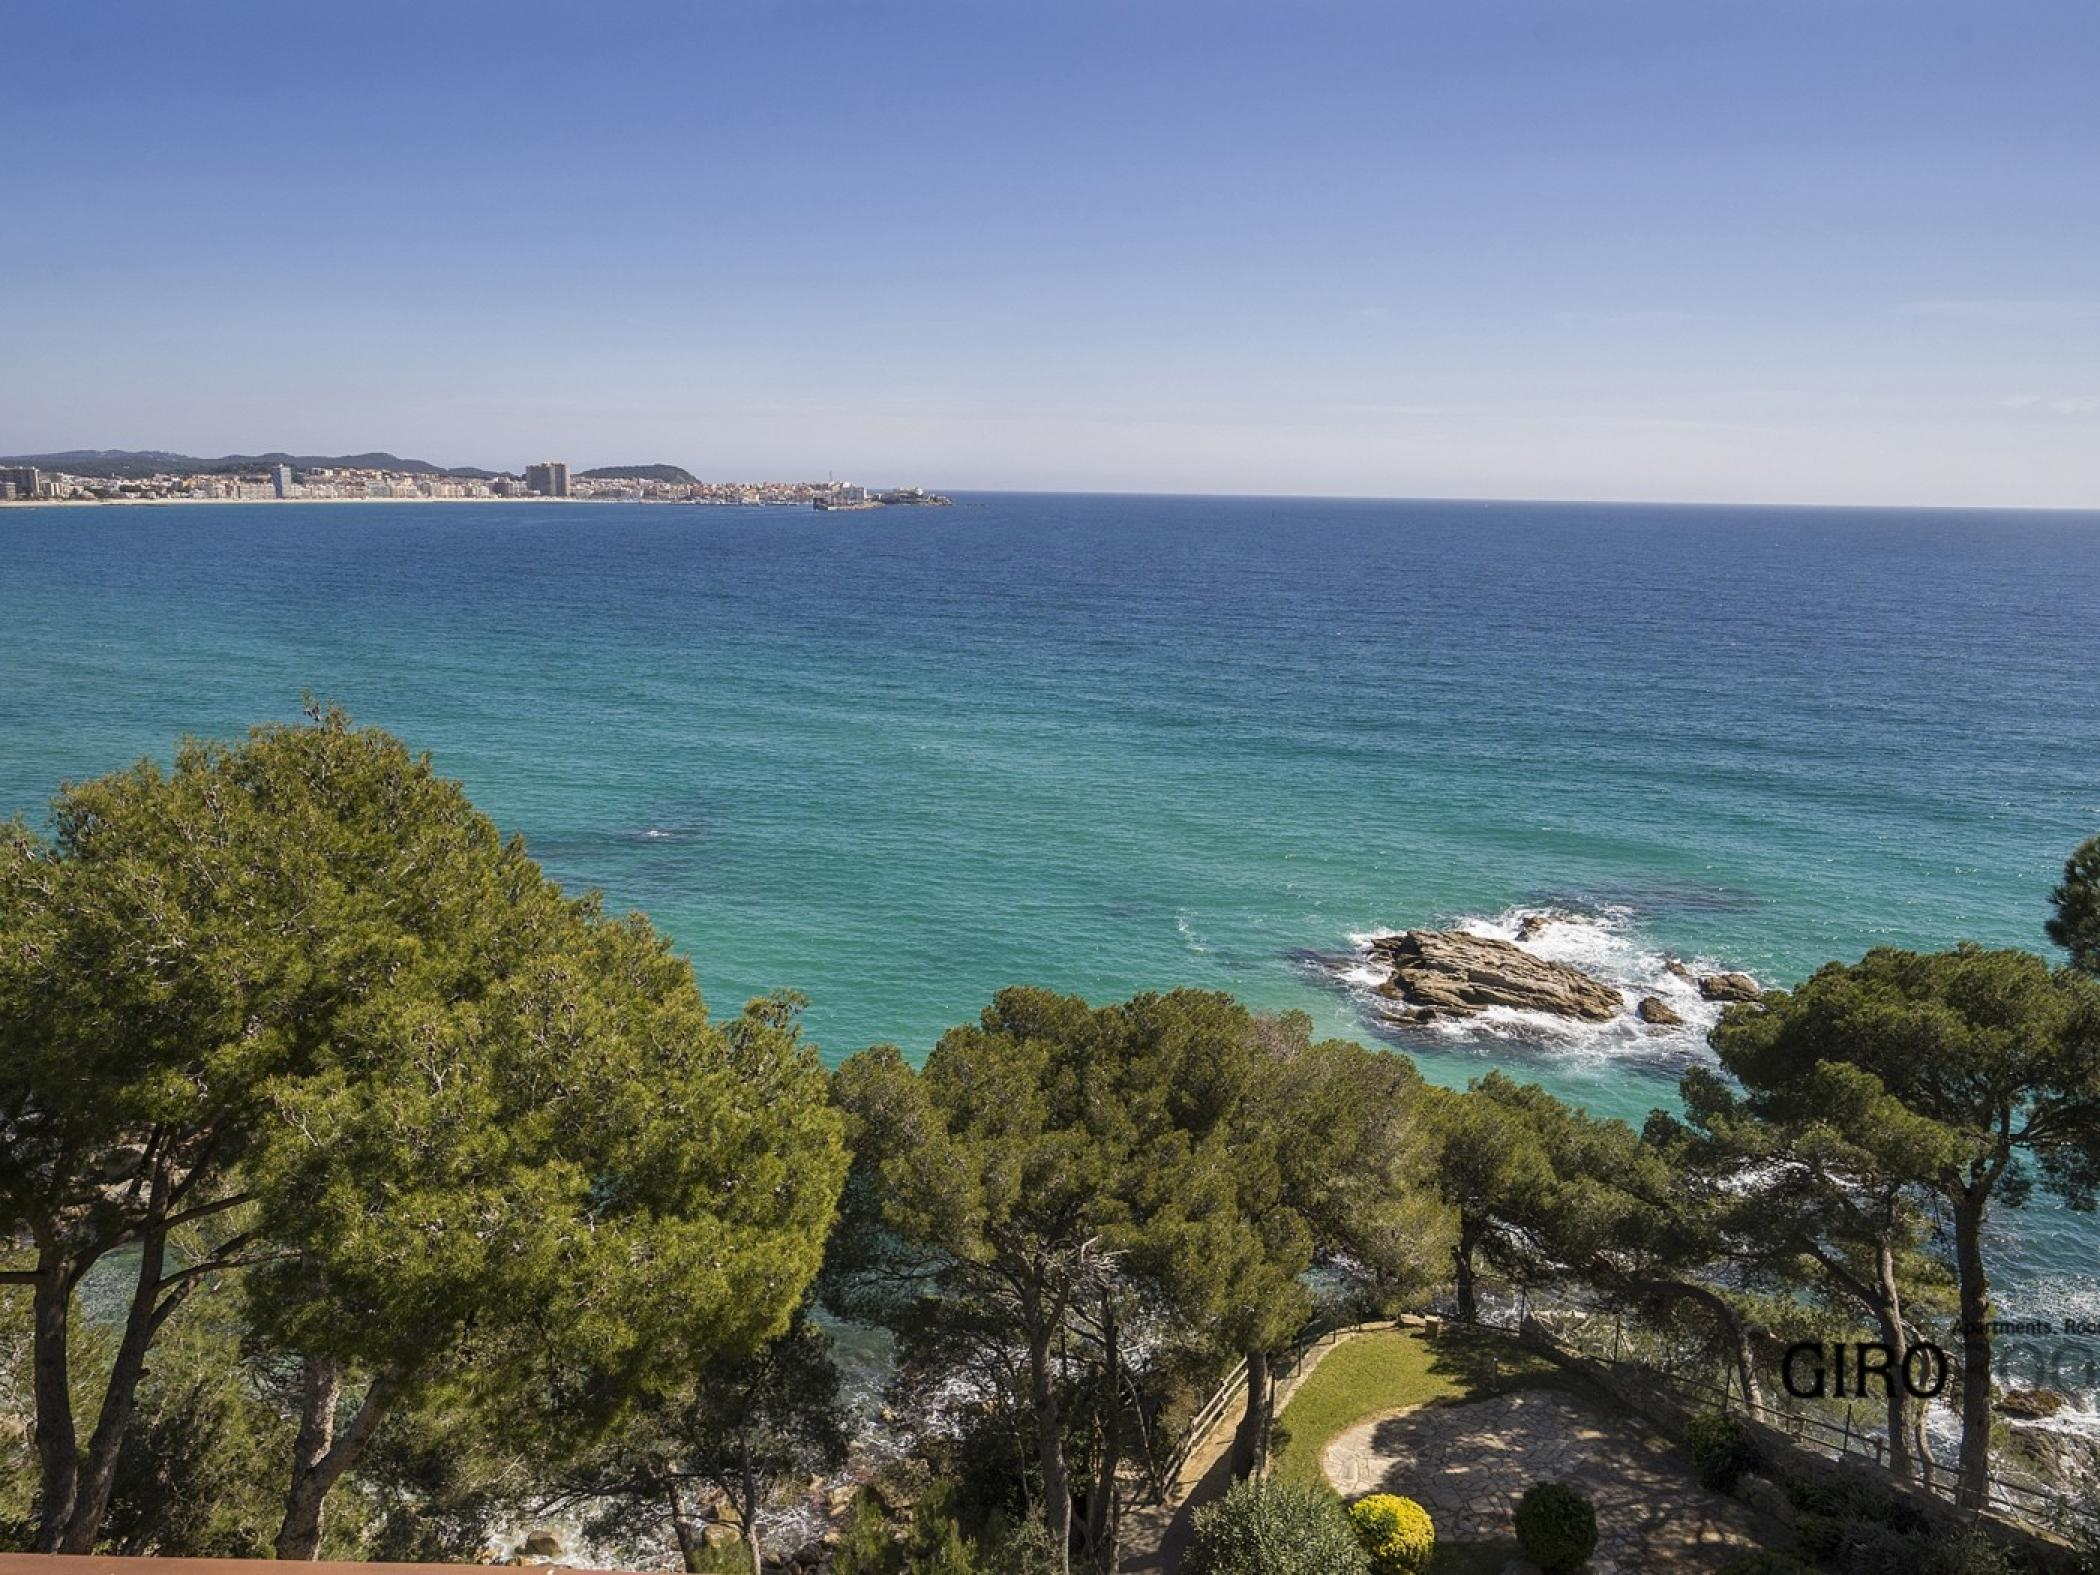 Rent Apartment with Swimming pool in Sant Antoni de Calonge - Eden Mar VIII - 17